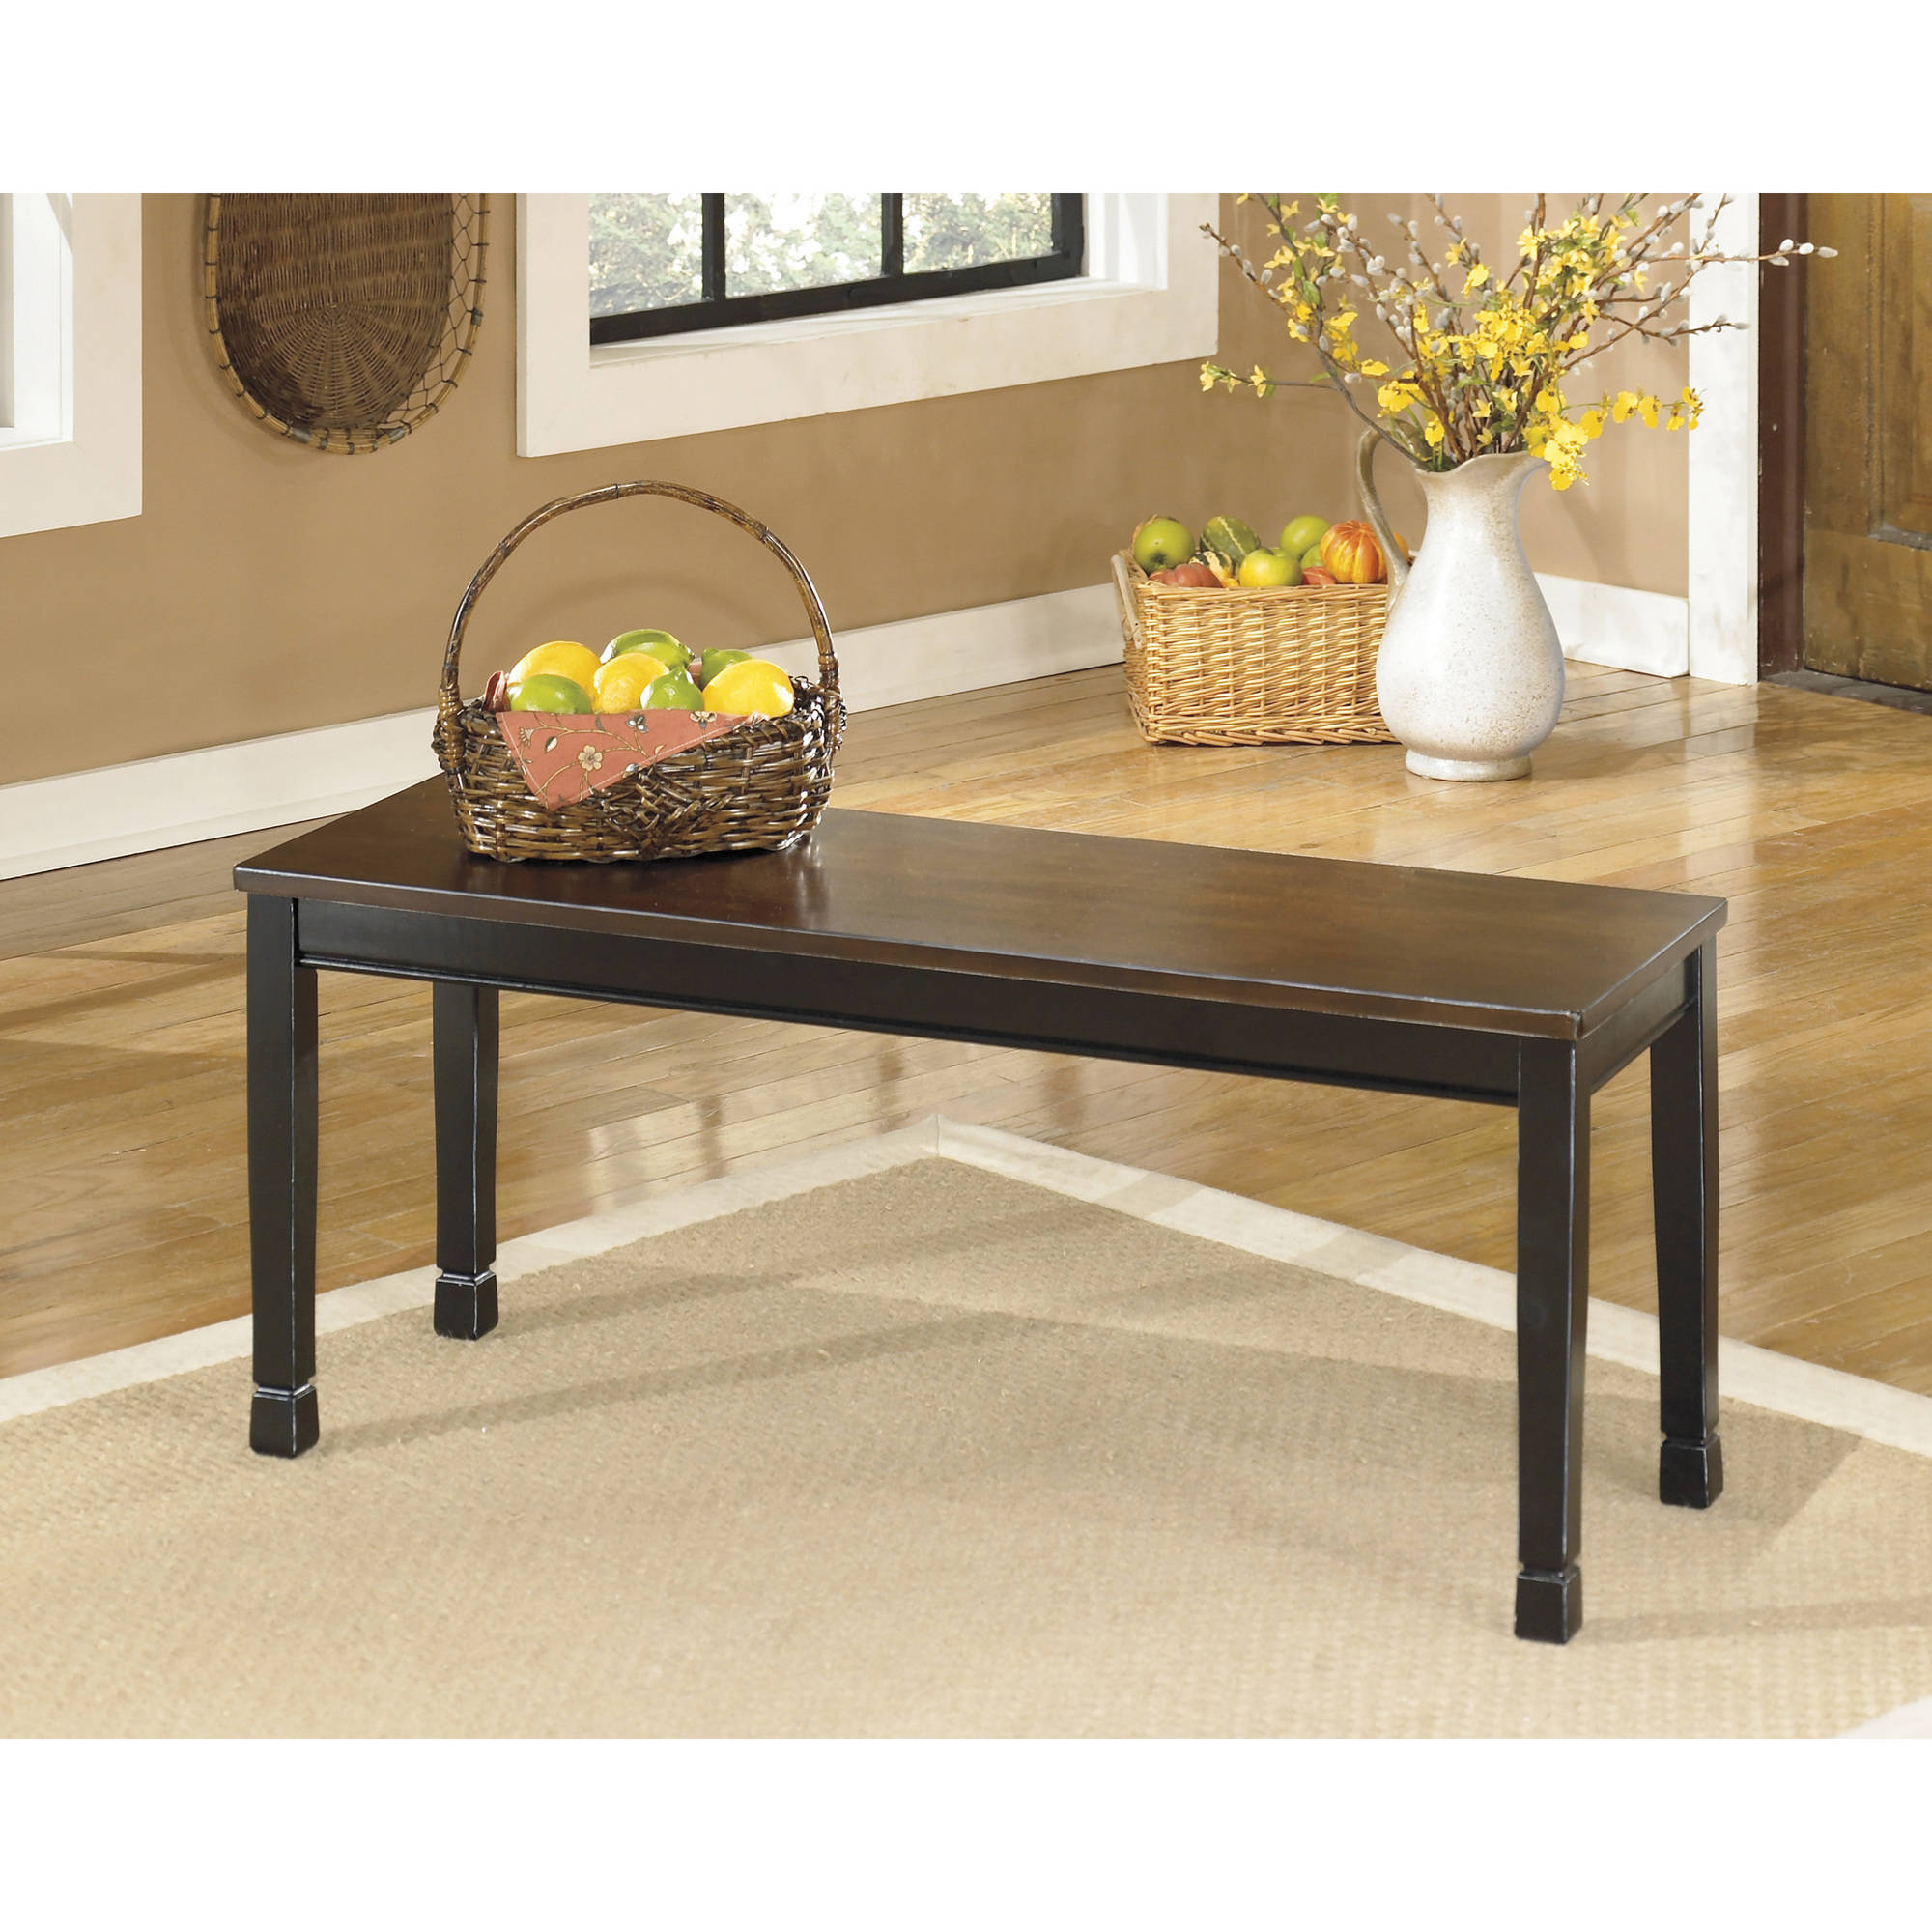 Signature Design By Ashley Owingsville Large Dining Room Bench, Black/Brown